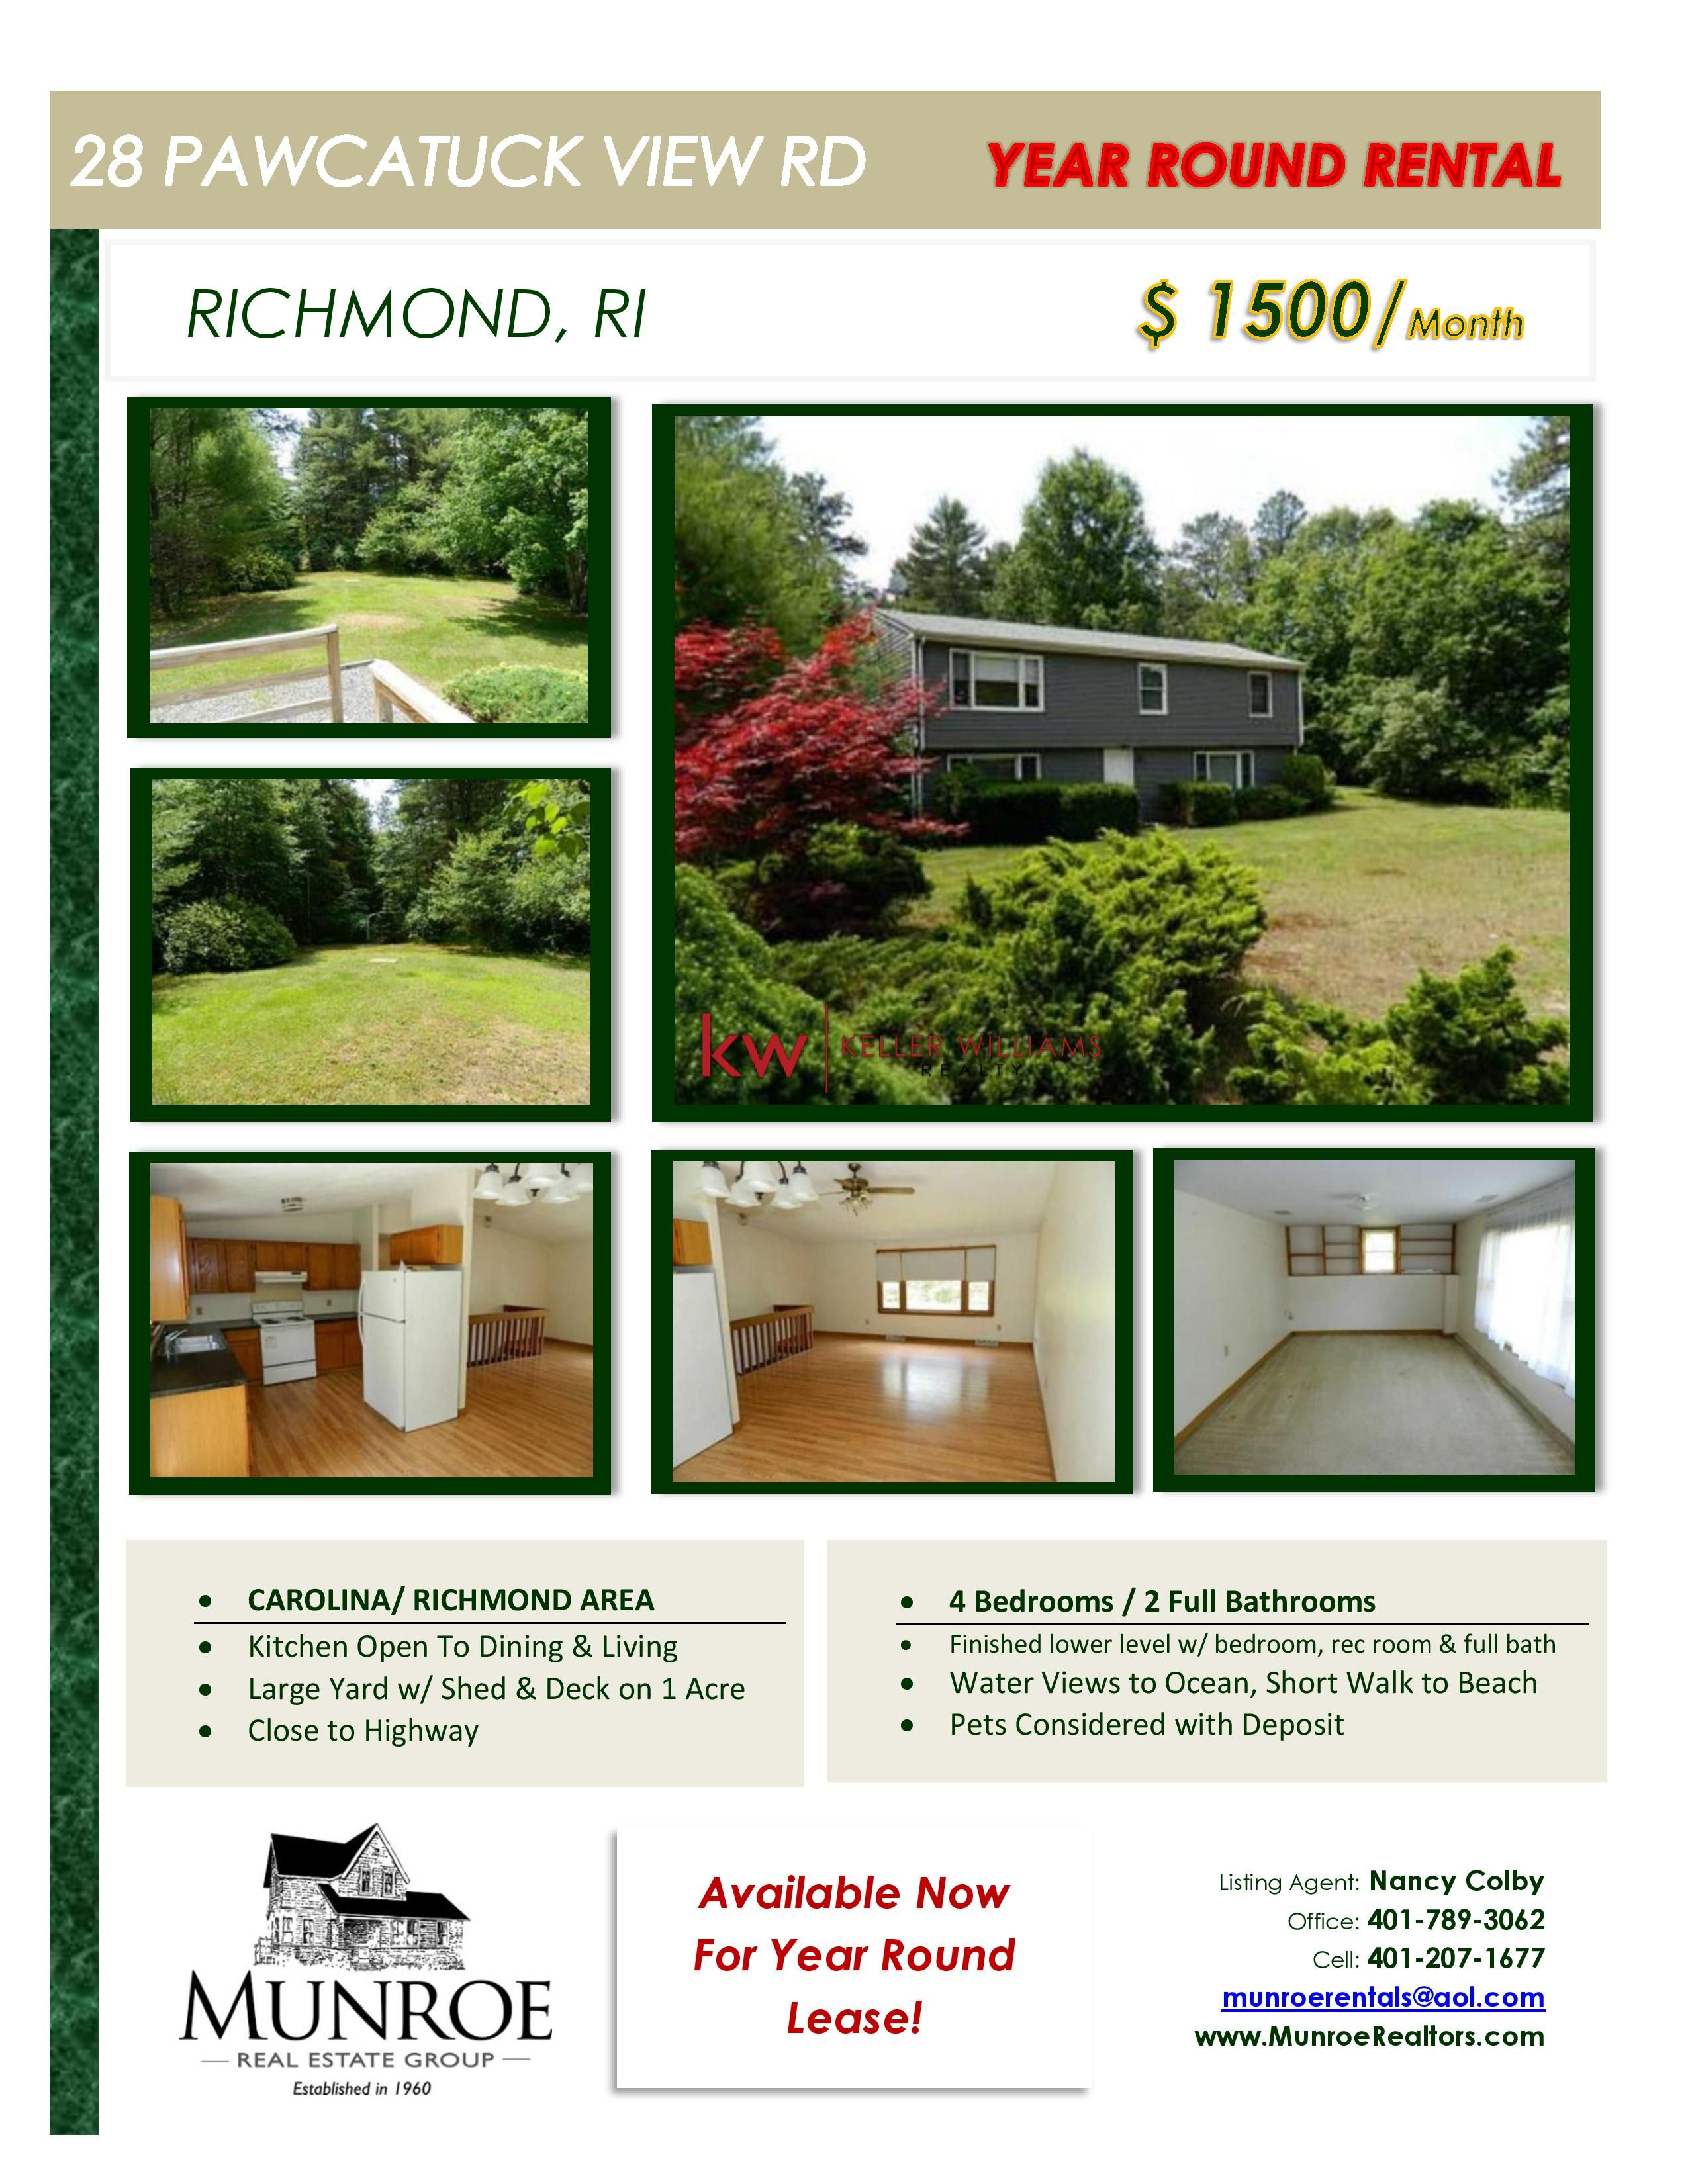 Great Year Round Rental in Richmond, RI. 4 Bedrooms and 2 Full Baths ...